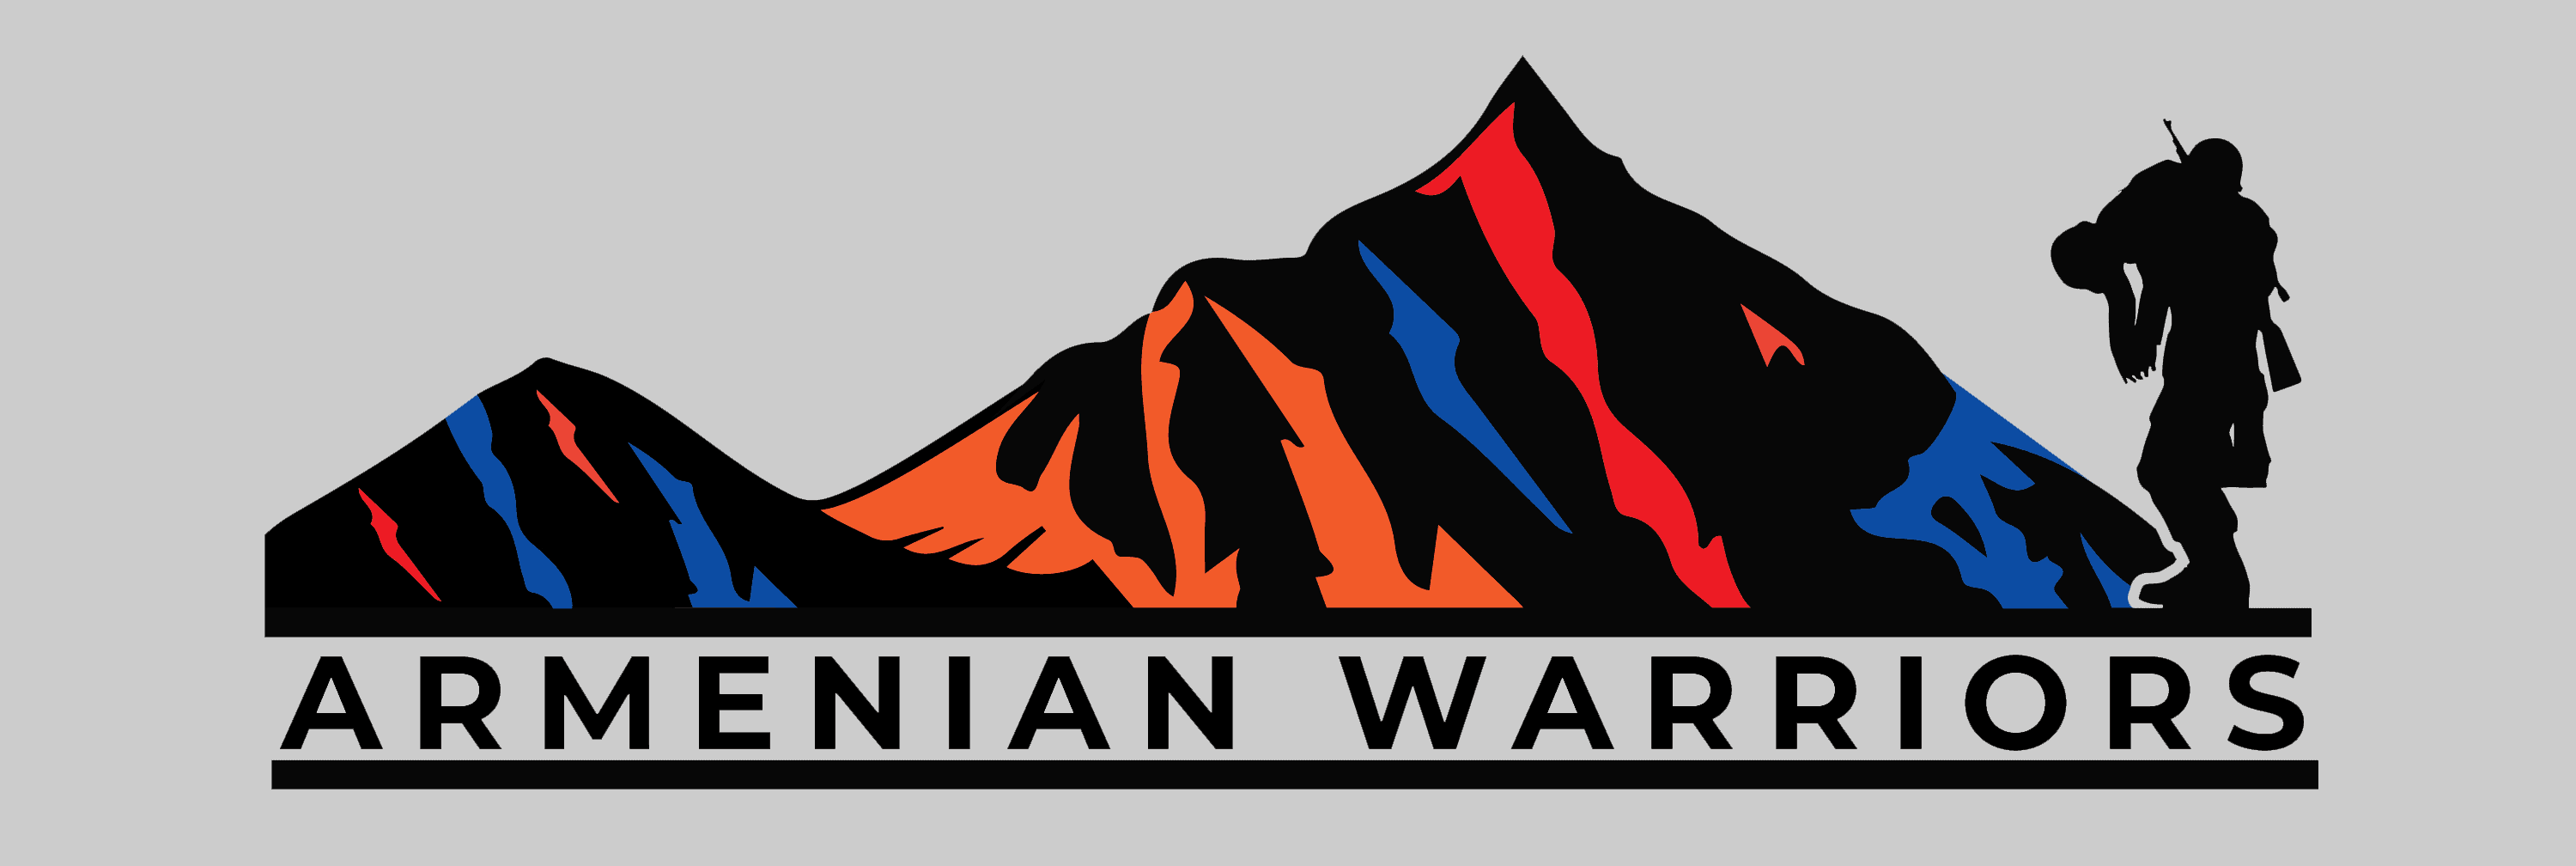 Armenian Warriors • A Nonprofit Organization Pending Tax-Exempt 501(c)(3) Status • © 2021